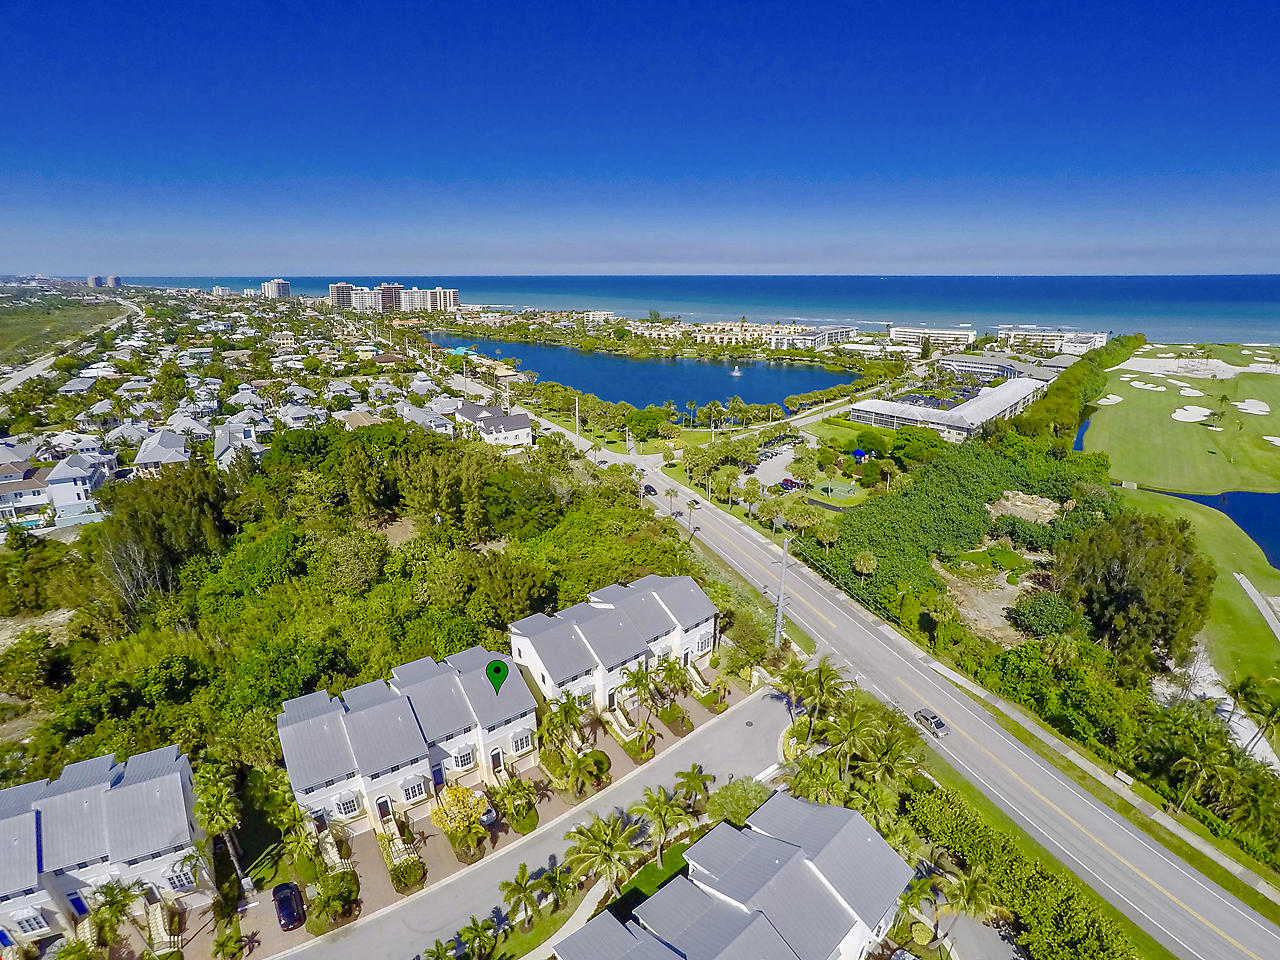 ***OPEN HOUSE, Sunday, April 25th 1PM to 3PM***GREAT INVESTMENT!! Check Out Video! Walk To The Beach! No Other 3 Bedrooms Available under $2,175,00 In Juno Beach. Ocean View from Kitchen and Master Suite!! This 3 bedroom 2.5 Bathroom 1 Car Garage END UNIT TOWNHOME is located in the heart of Juno Beach! Some Features include - Ocean Views From Balcony & Kitchen, Impact Glass Windows and Doors, Large Kitchen, 9ft Ceilings, Wood & Tile Floors, 2 Covered Balconies,1st Floor Guest Suite has a Murphy Bed with Private Bath and Patio. Walk to the Beach, Playground and Pelican Lake! AC Unit 2015.